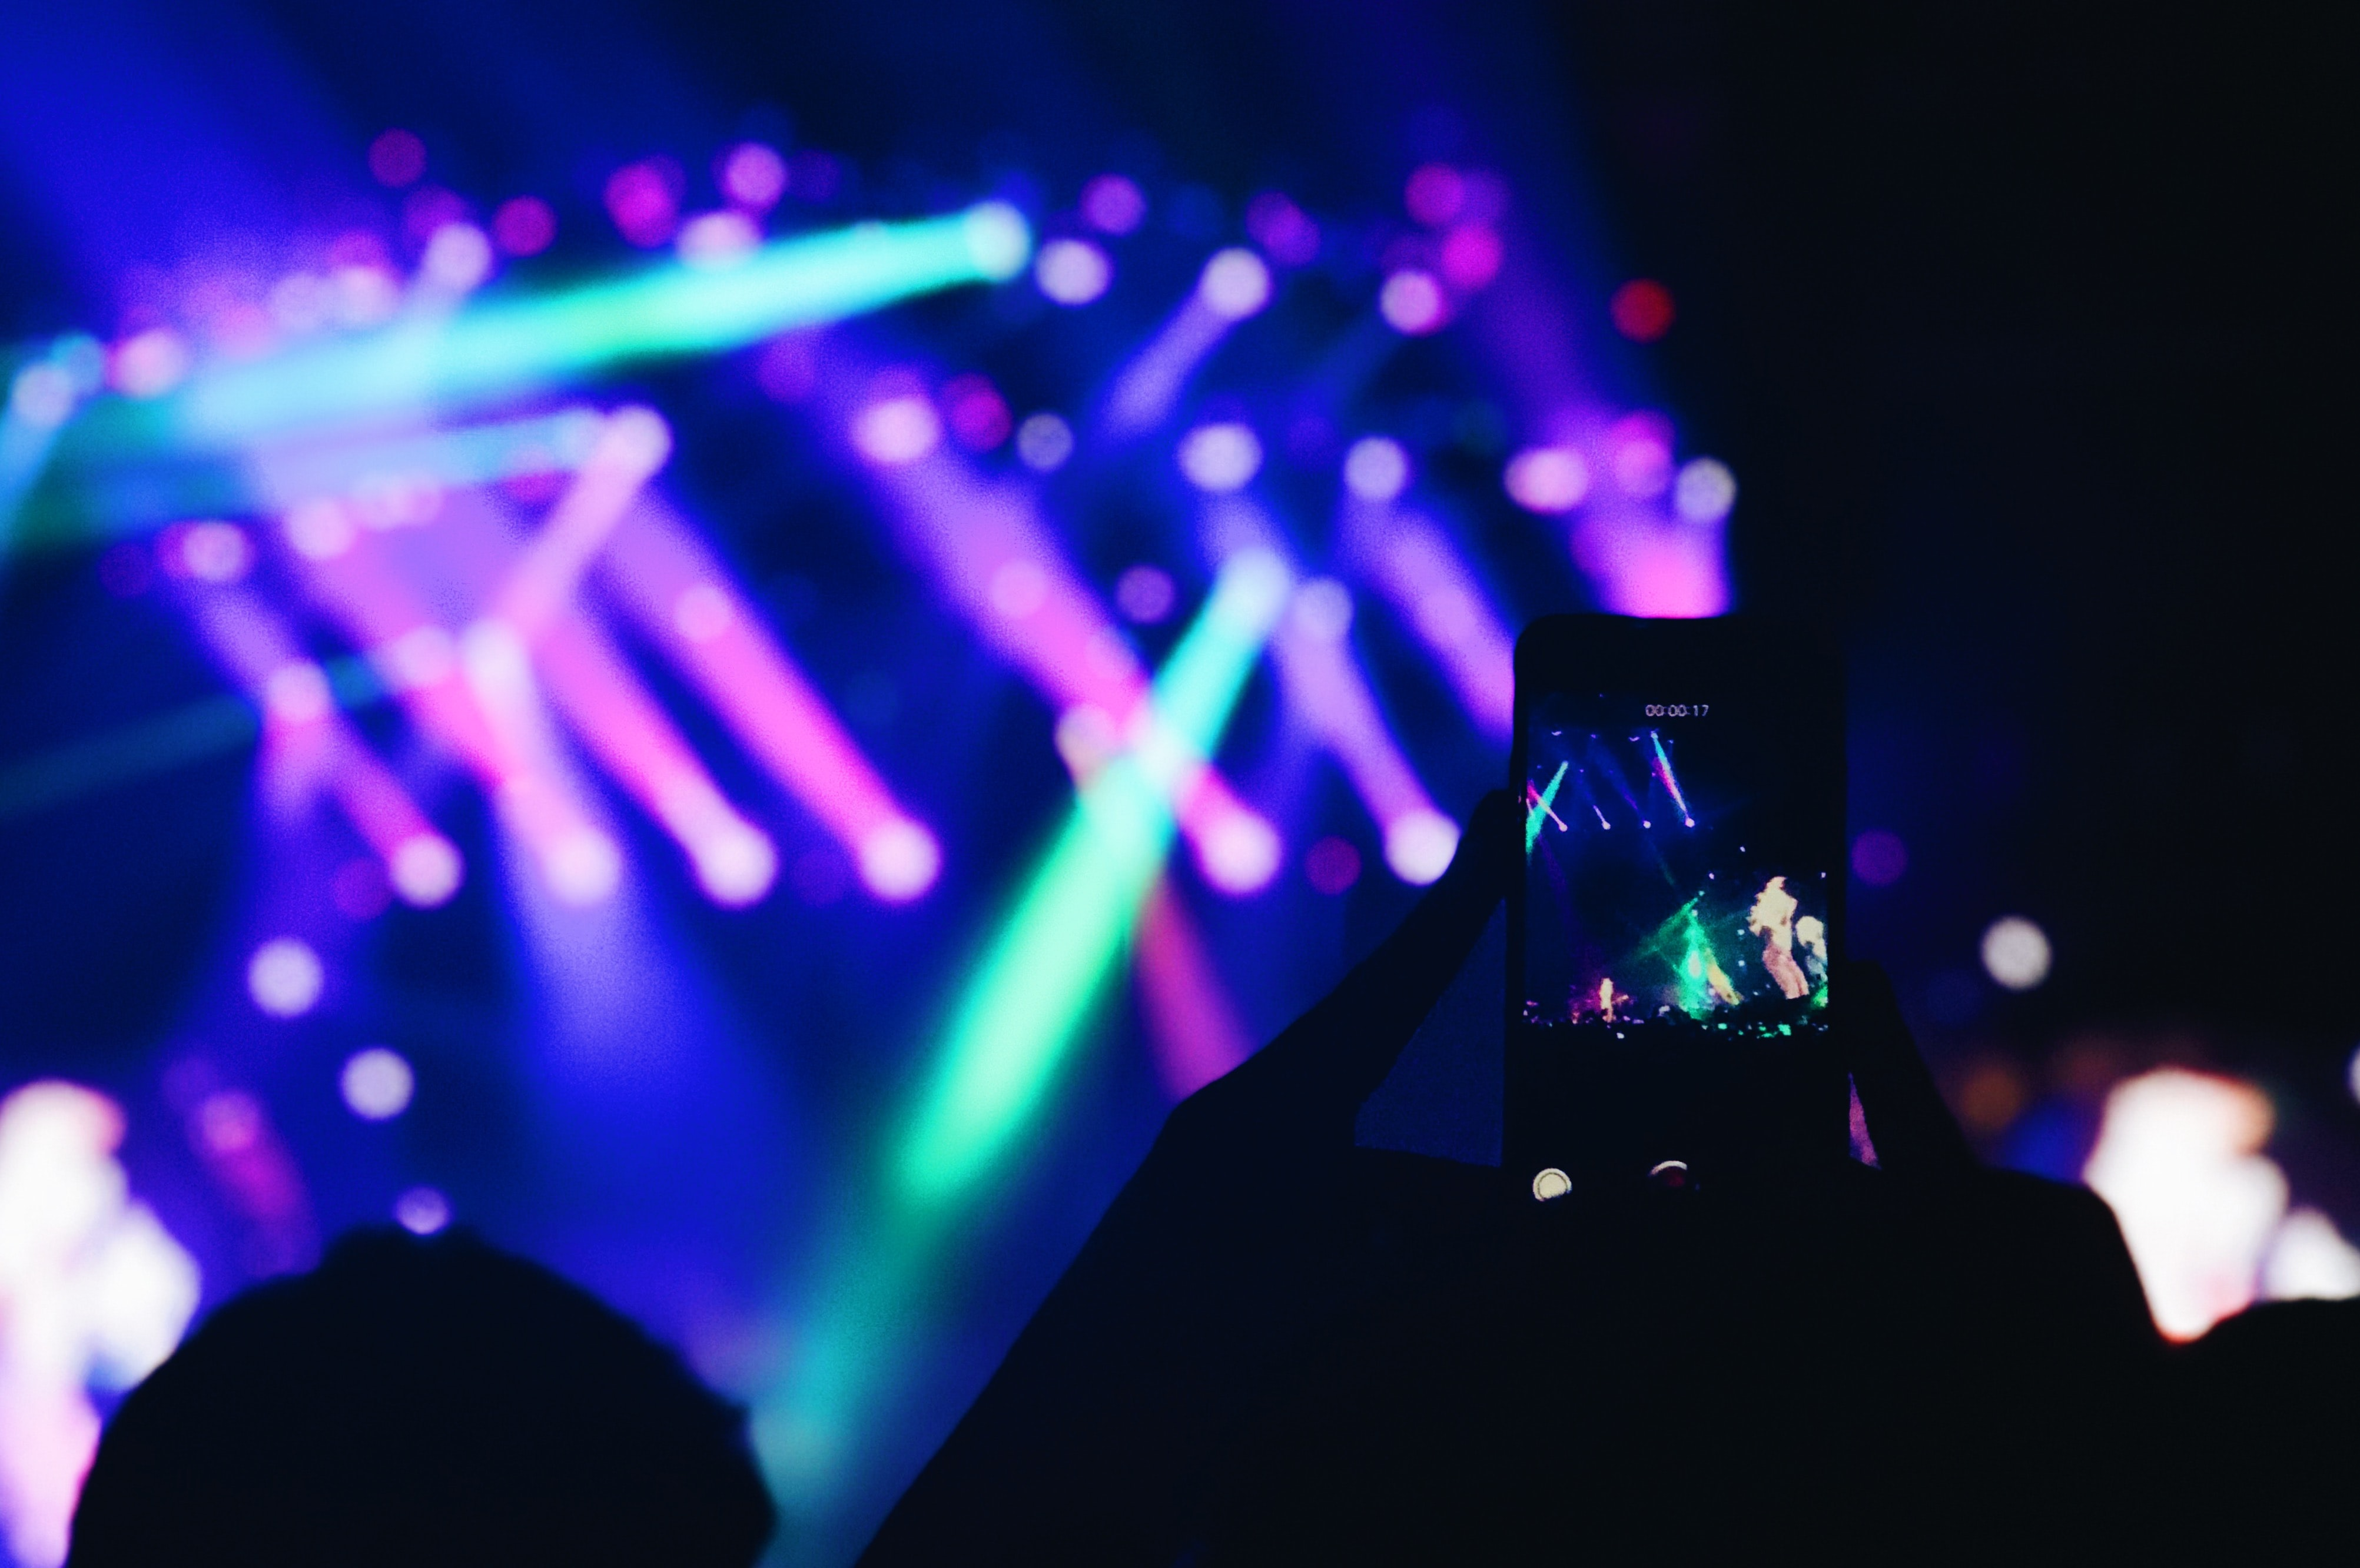 person taking photo of concert